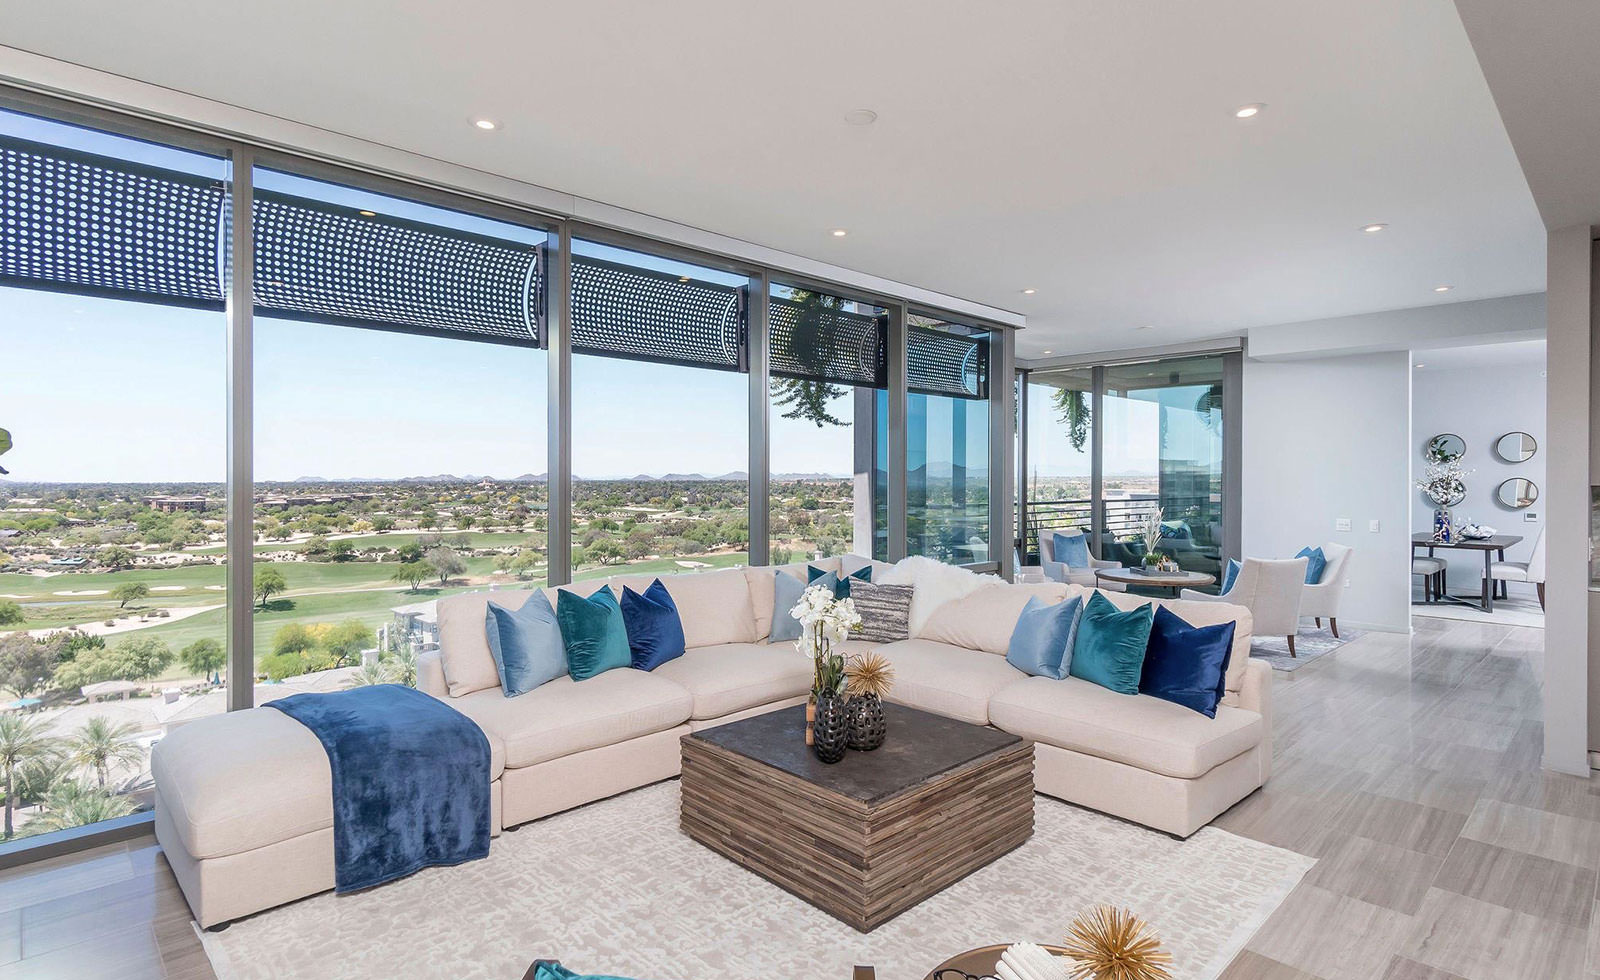 Sutton Staging Home Staging Services In Scottsdale Arizona